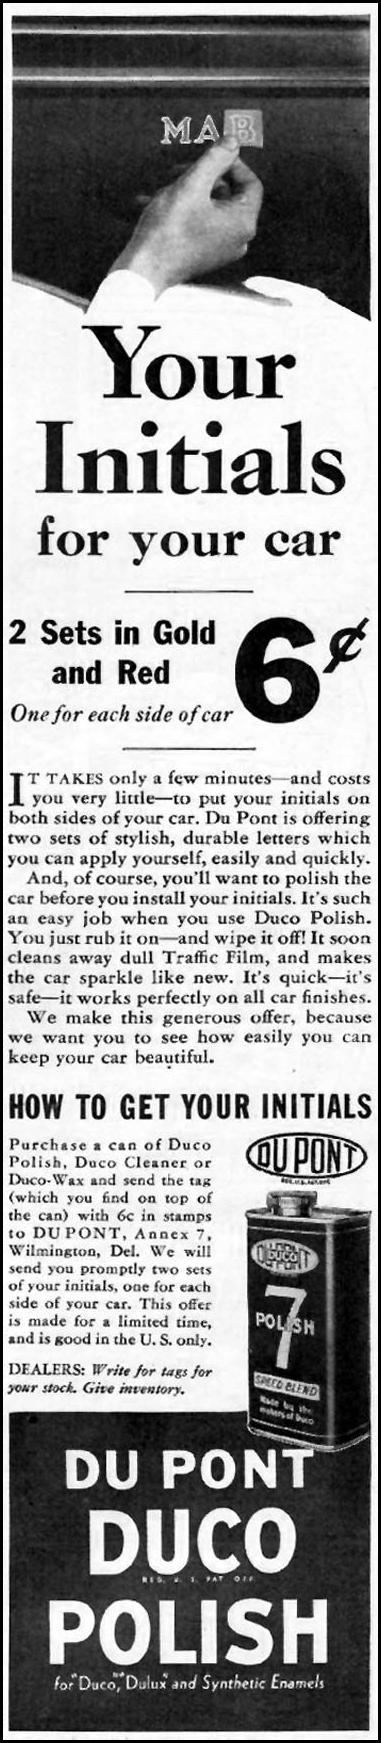 DU PONT DUCO POLISH BETTER HOMES AND GARDENS 05/01/1936 p. 113